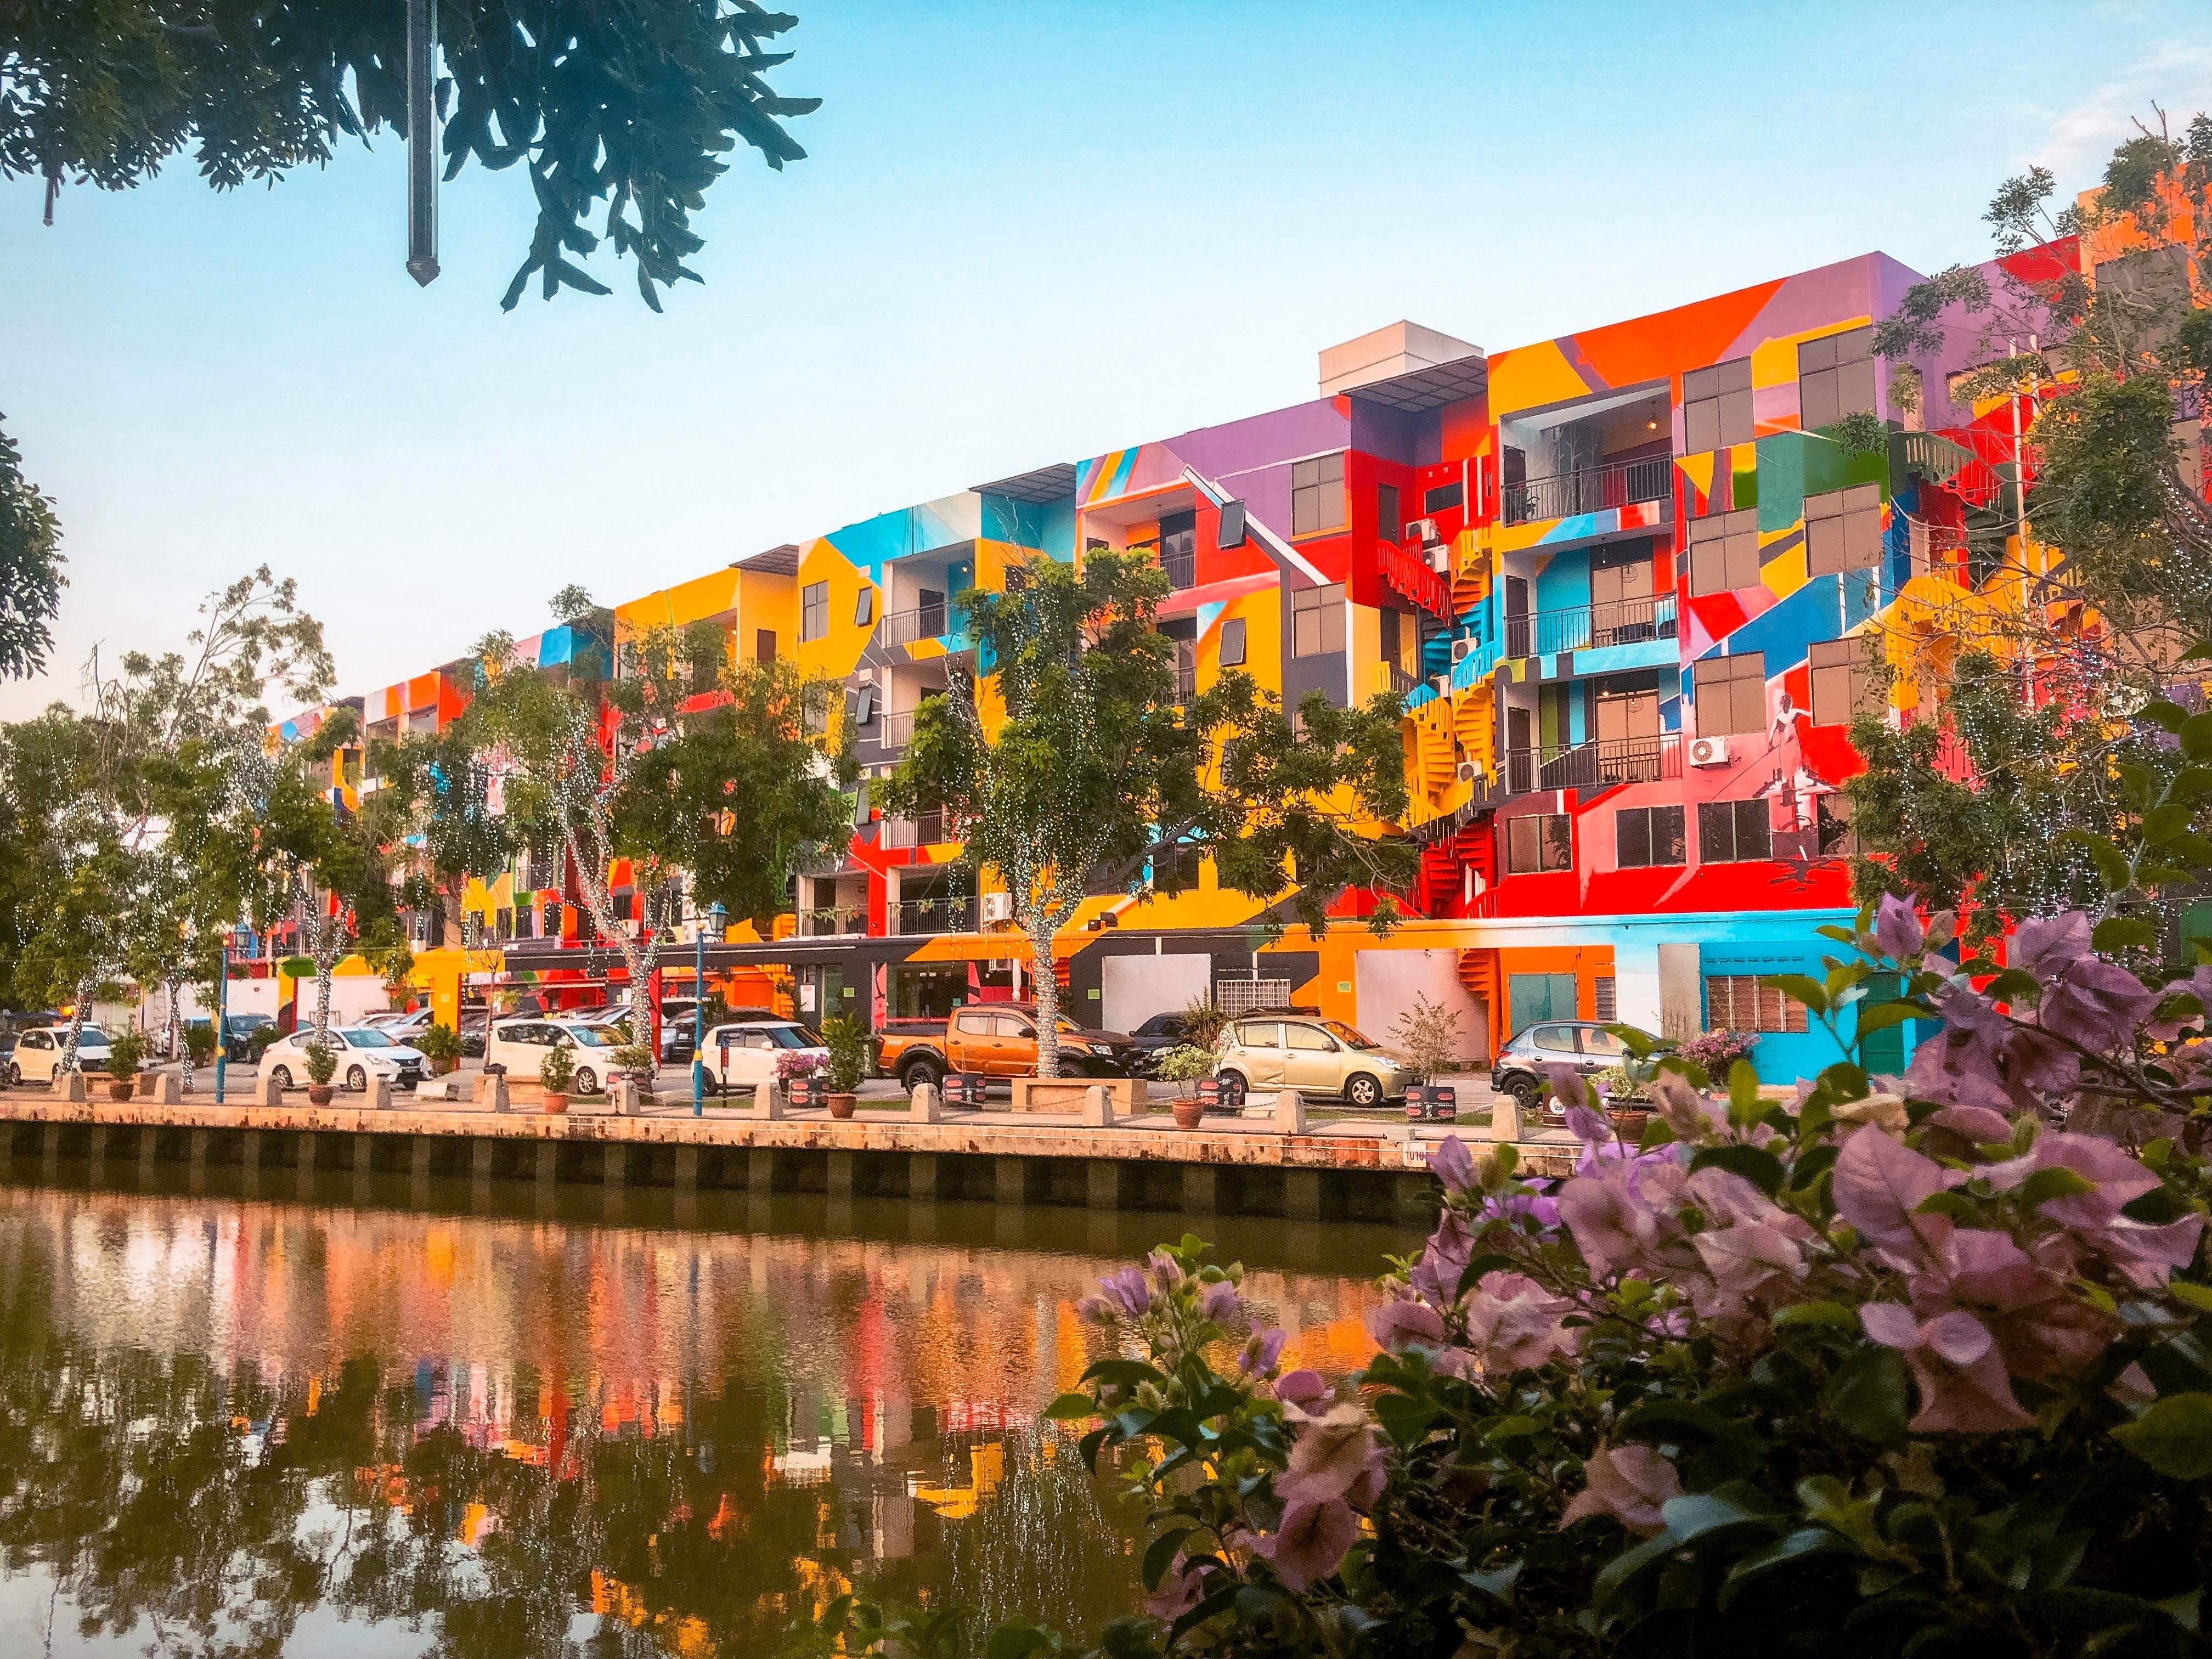 A building completely covered in rainbow colours and paint next to the river.